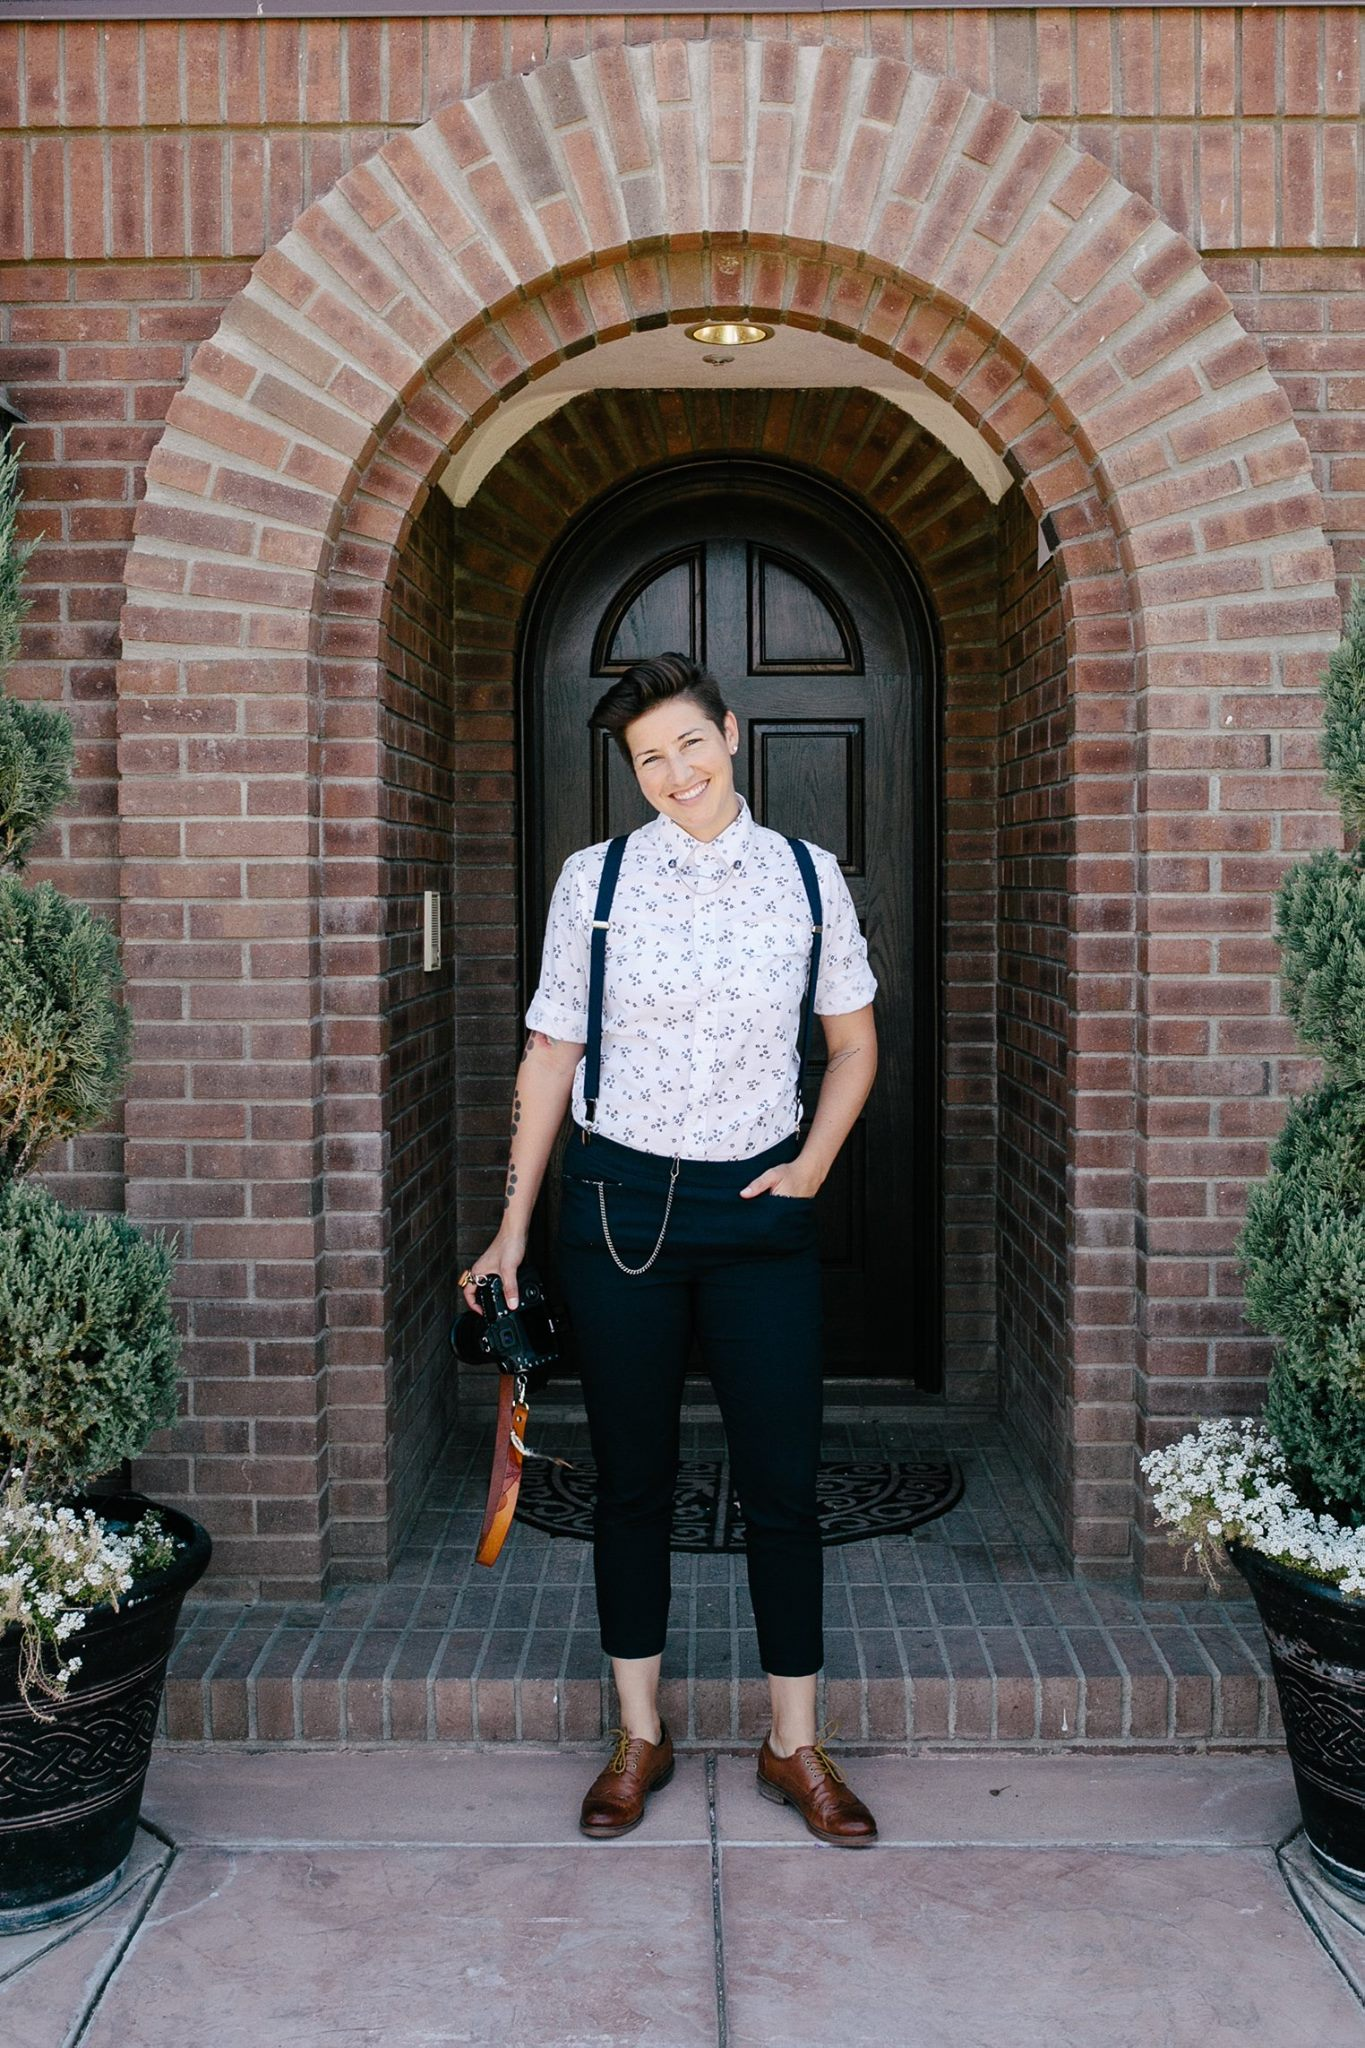 - Kelly Balch // 31, Palmdale, California, residing in Los Angeles, Ca. Photographing LGBTQ+ love stories since 2012.IG: @KellyBalch